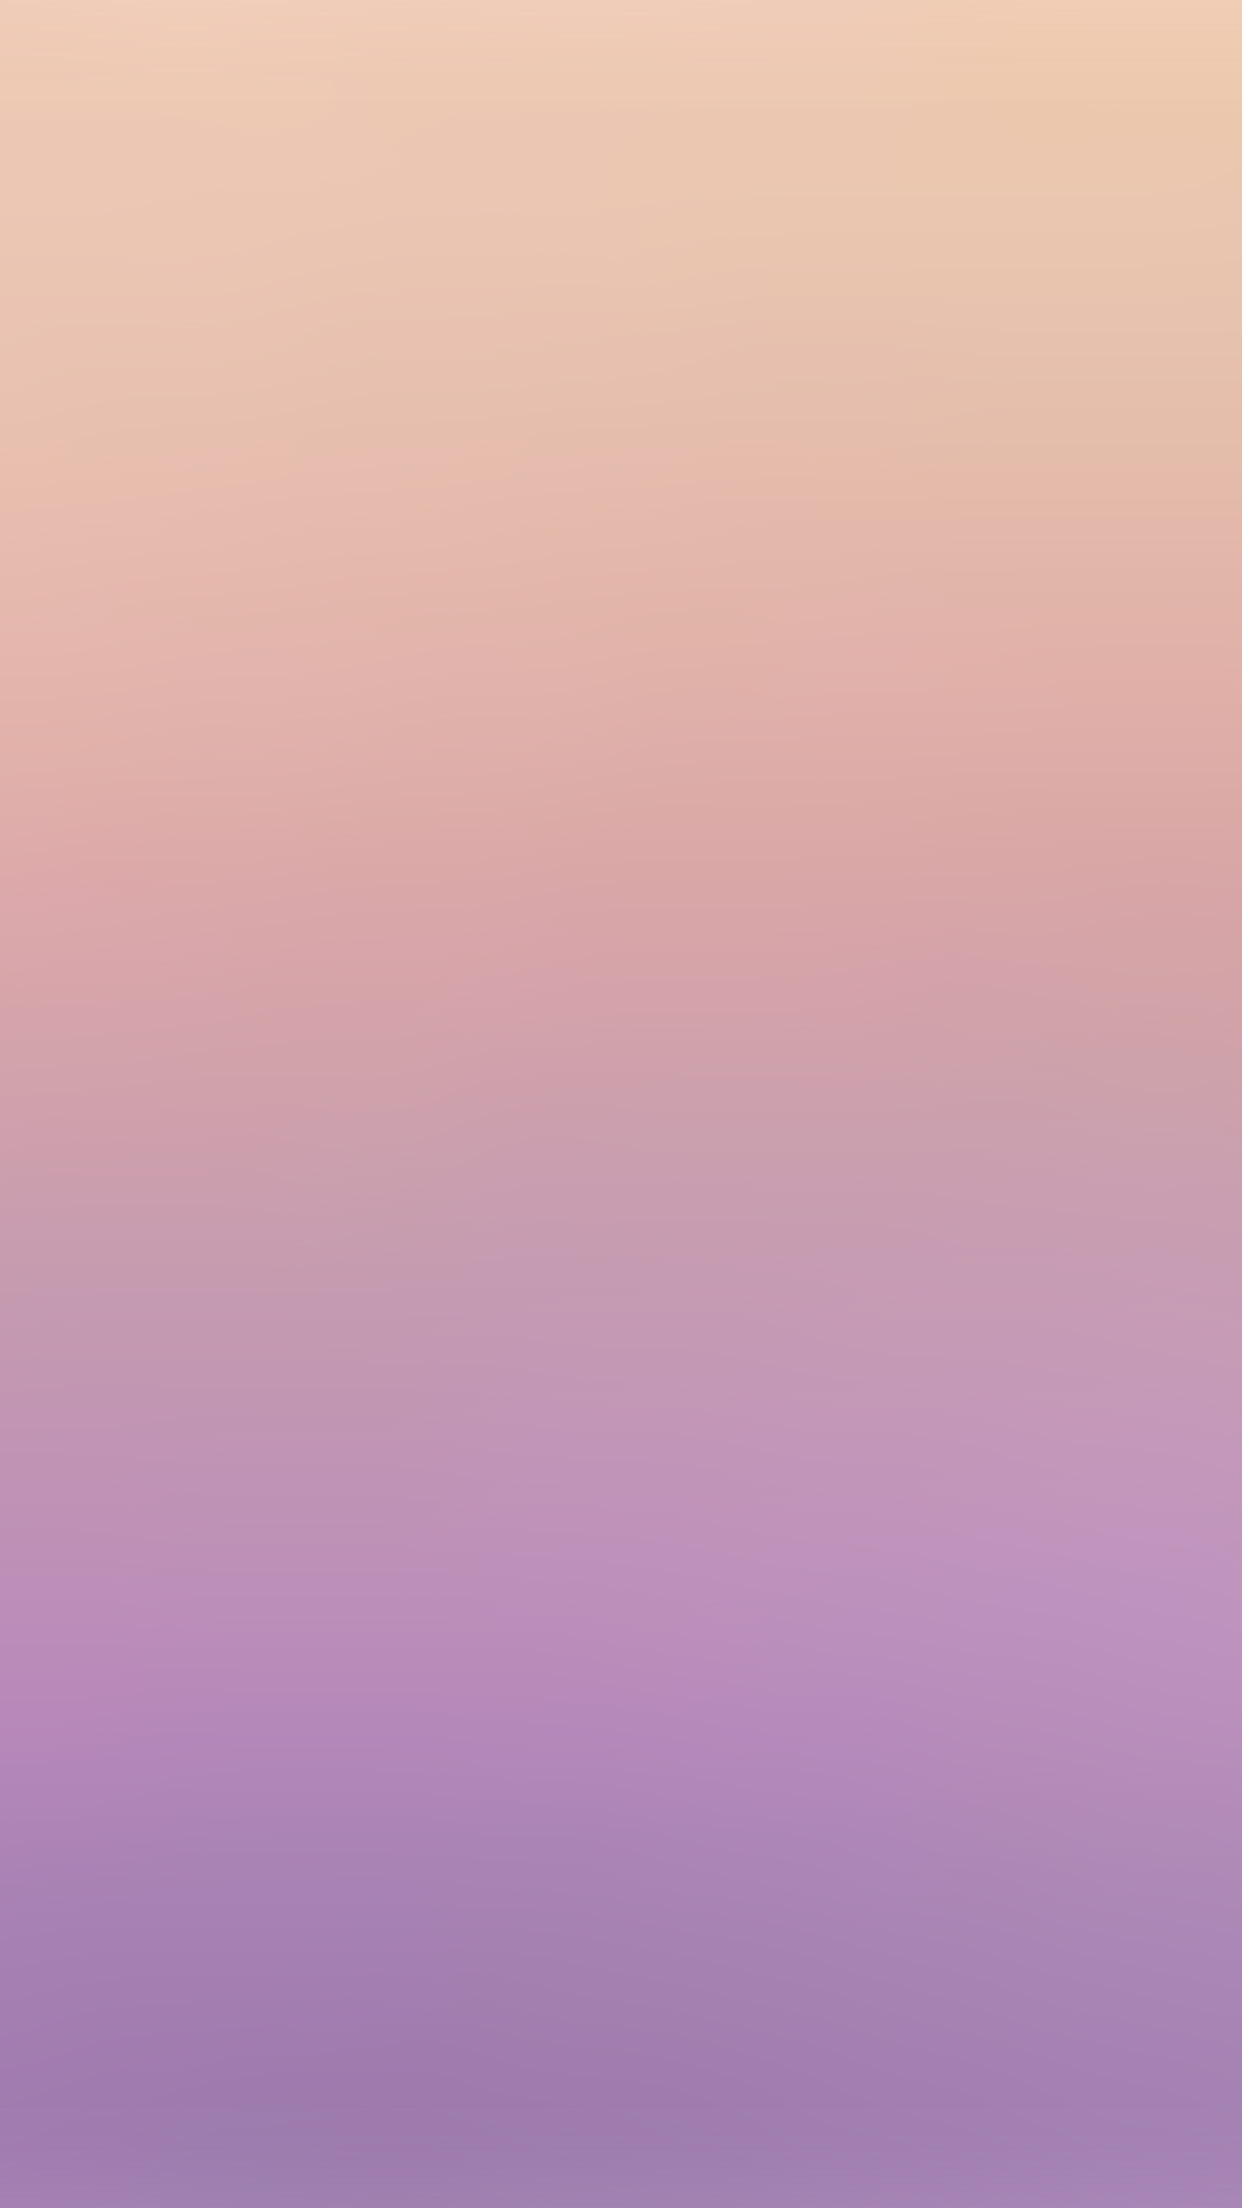 Fall Wallpapers In Pink Color Papers Co Iphone Wallpaper Sl84 Pastel Pink Purple